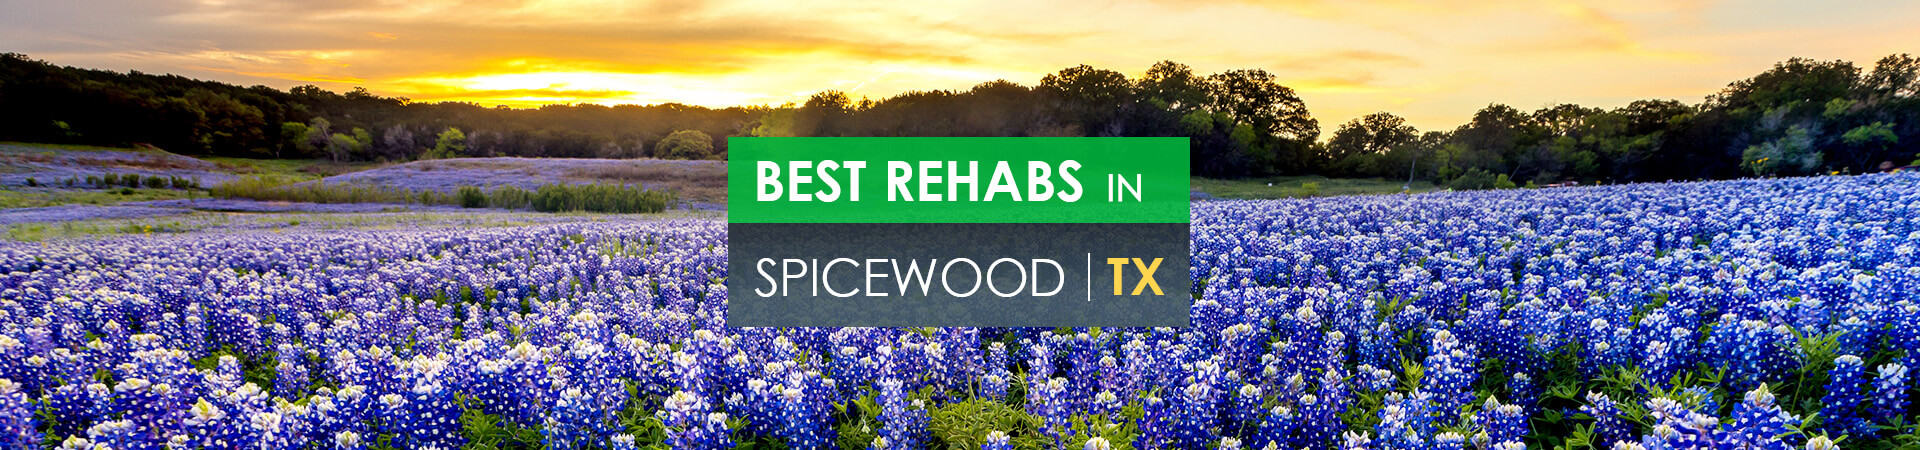 Best rehabs in Spicewood, TX